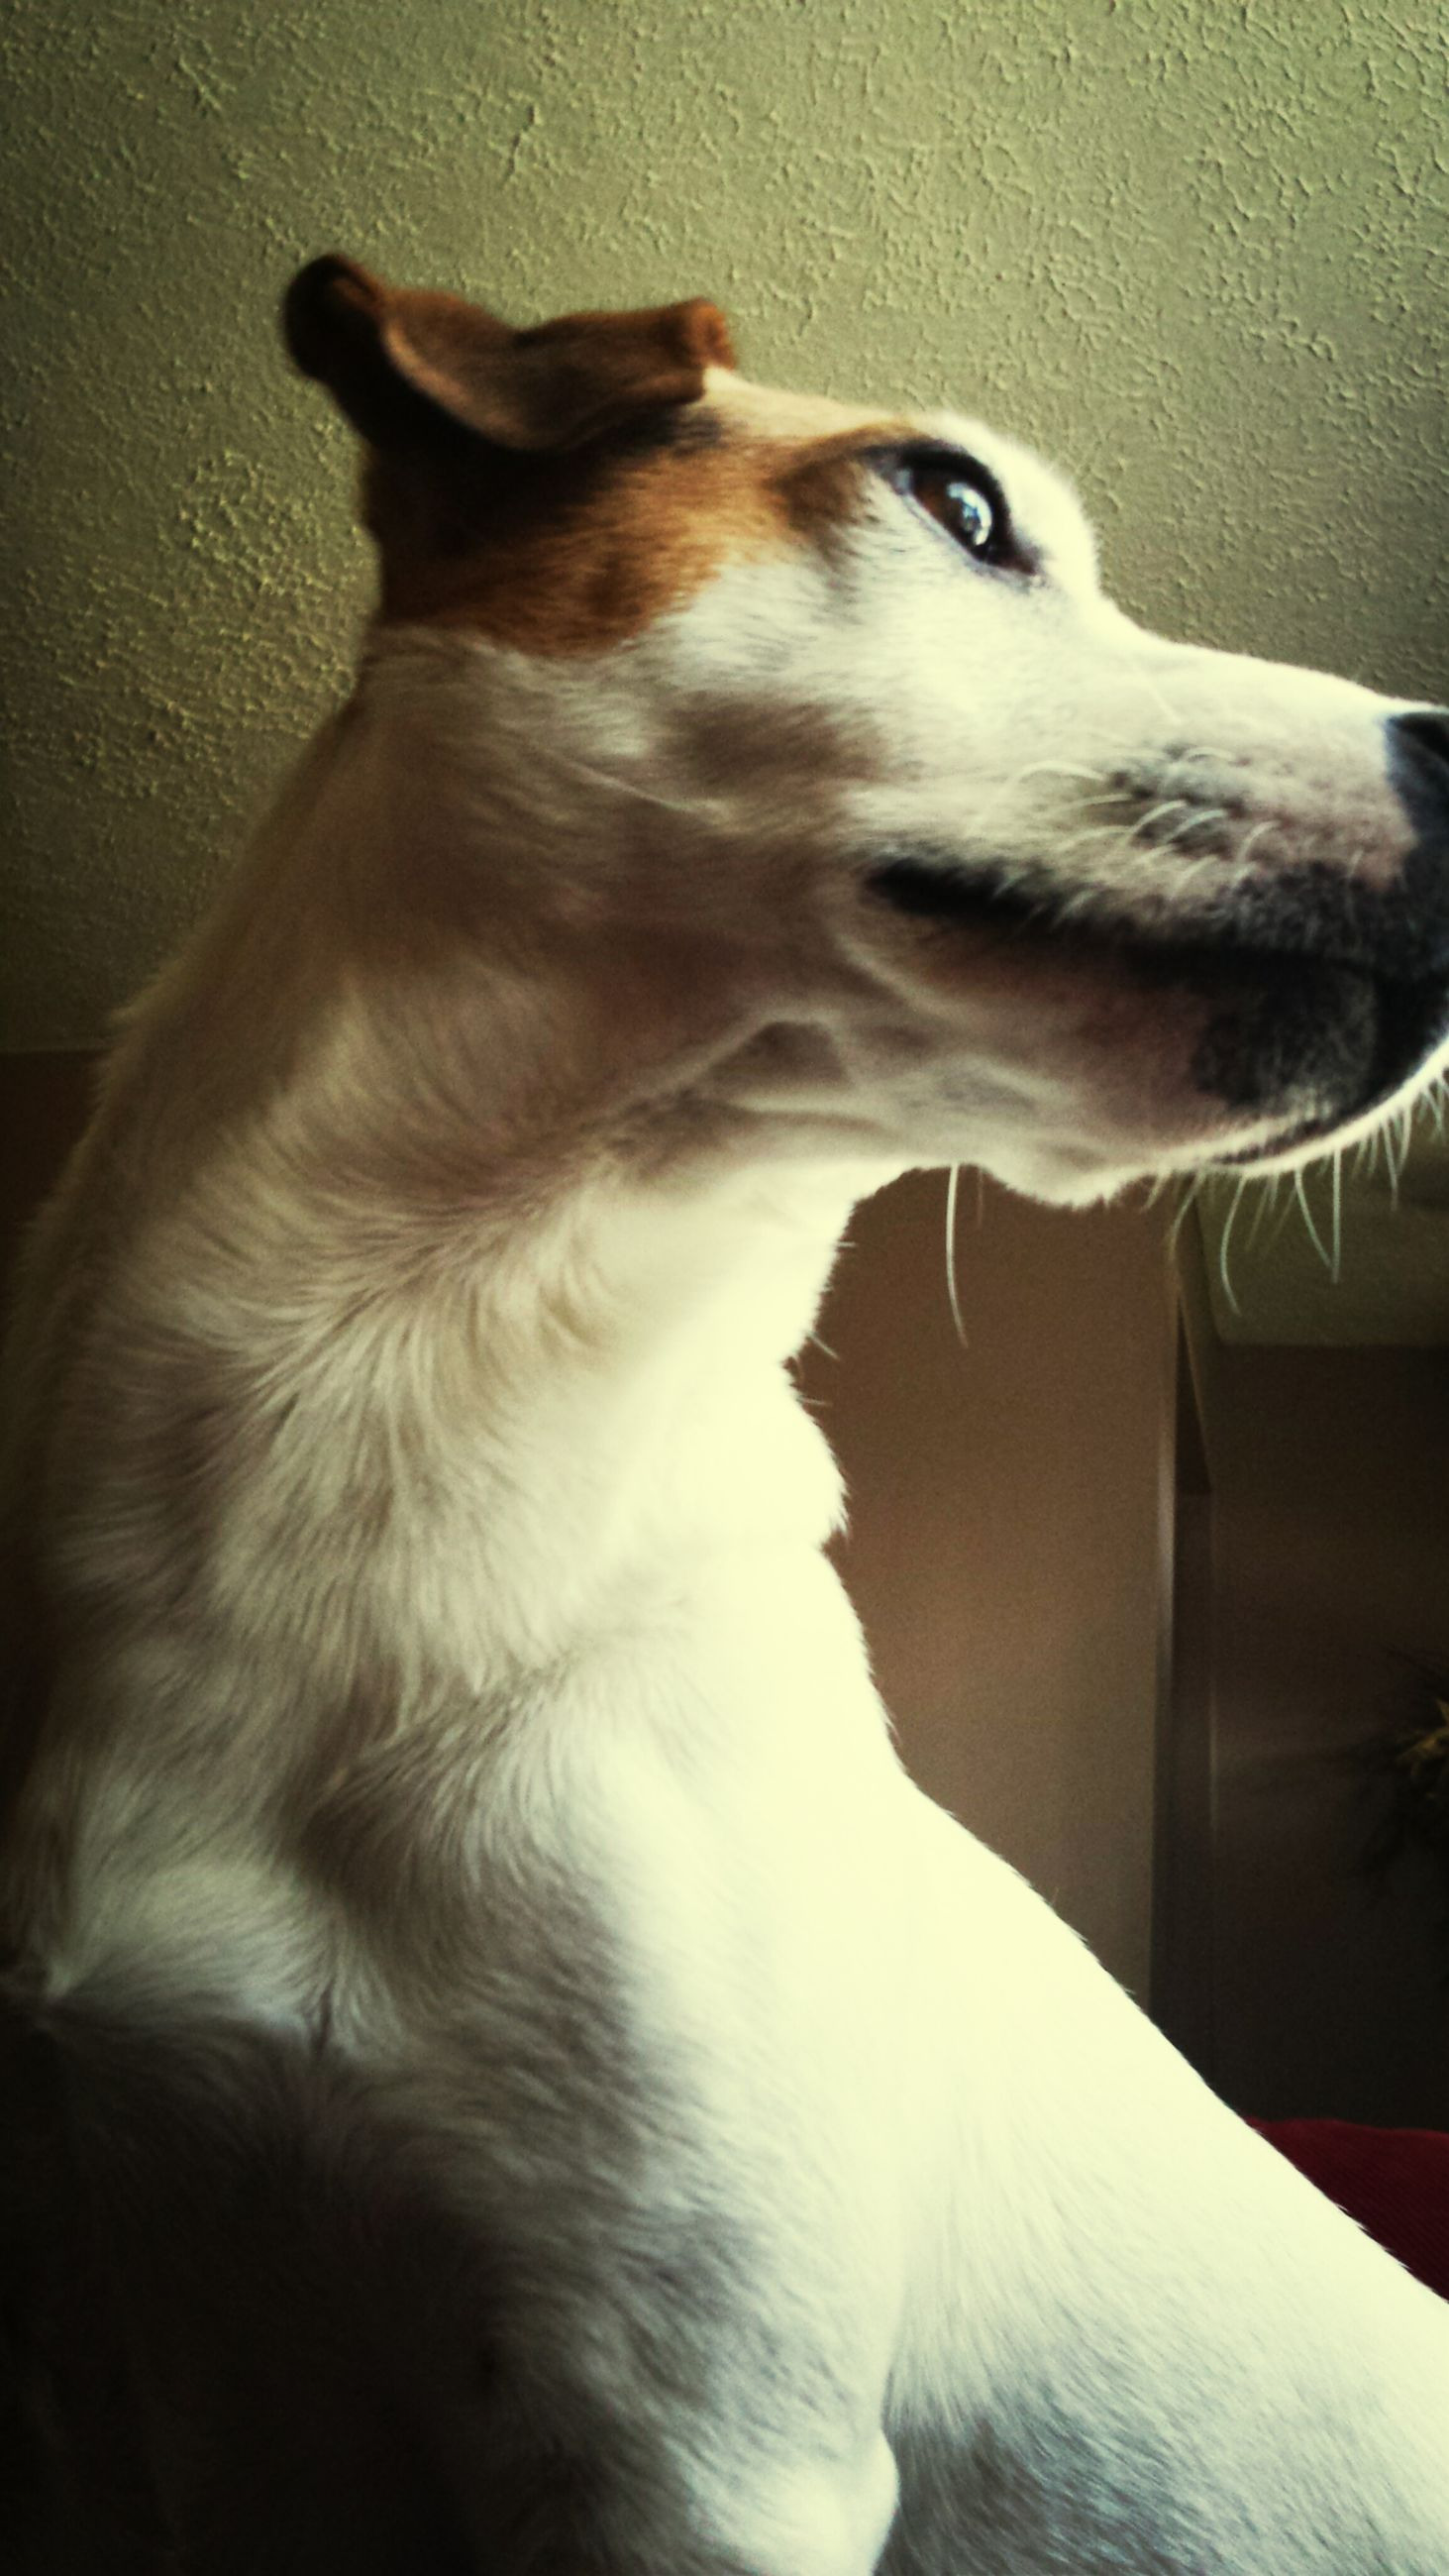 animal themes, one animal, domestic animals, mammal, pets, indoors, close-up, domestic cat, dog, side view, animal head, looking away, cat, no people, feline, white color, sunlight, animal, relaxation, sitting